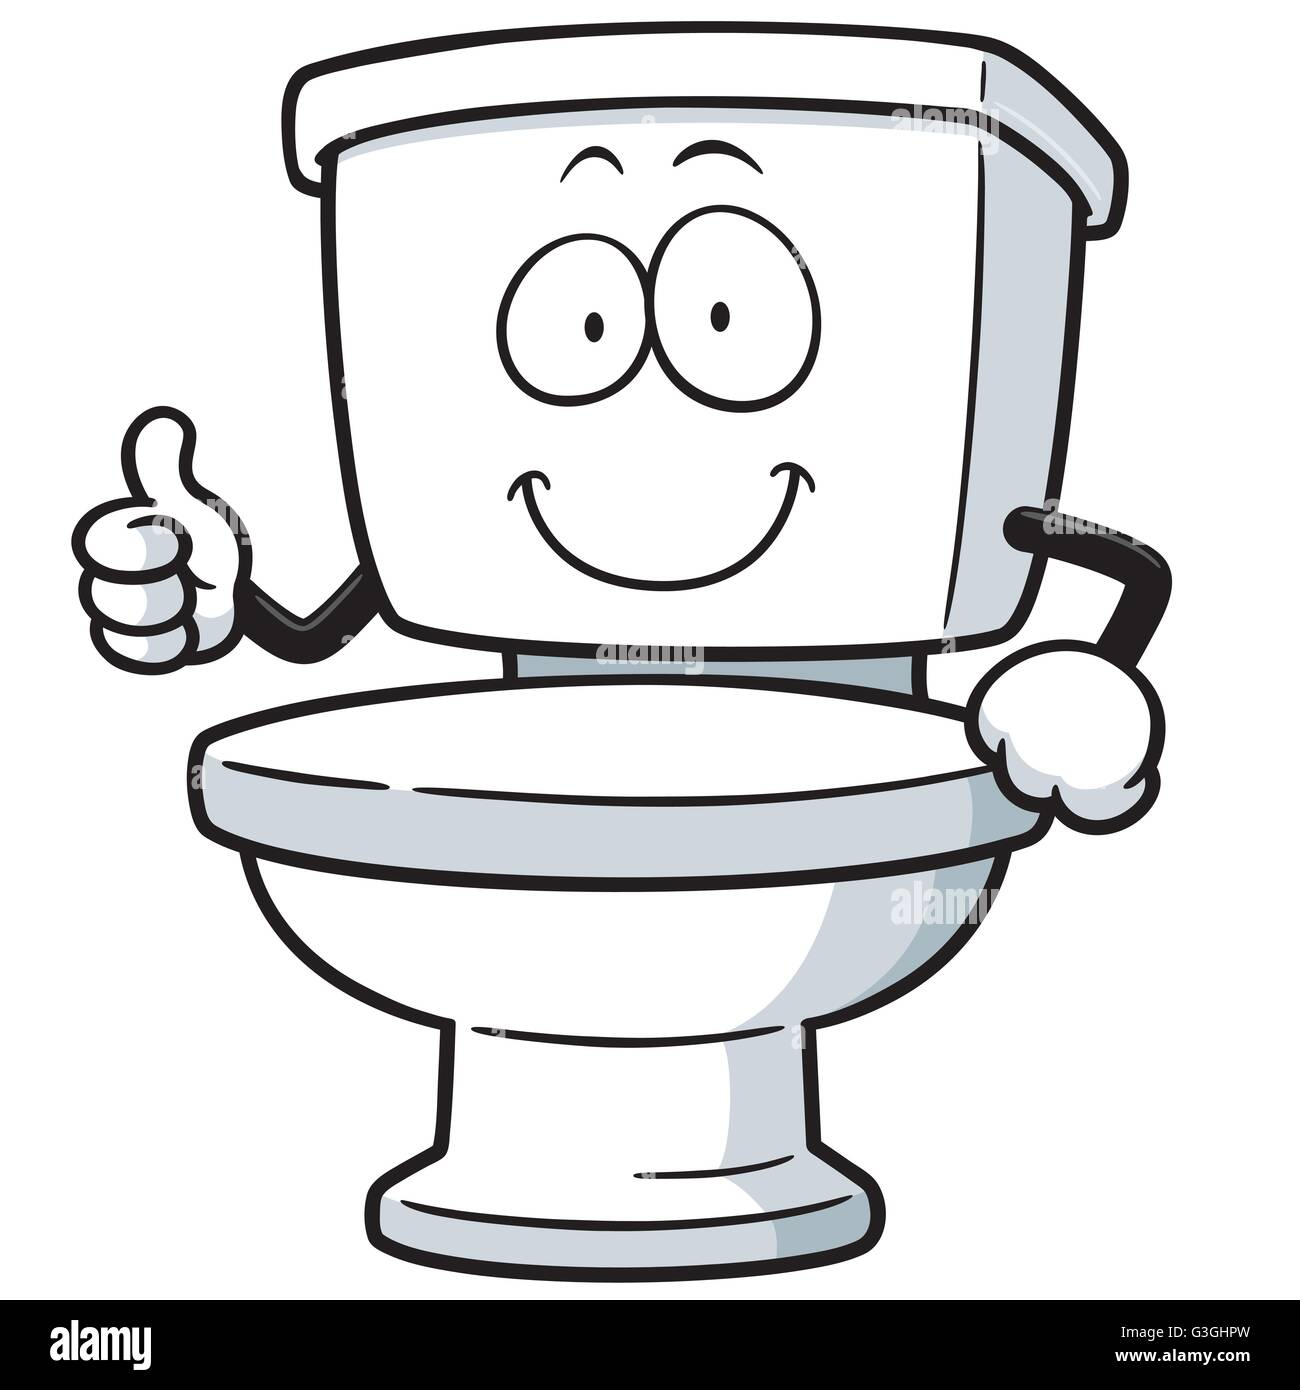 Vector Illustration Of Cartoon Toilet Stock Vector Art